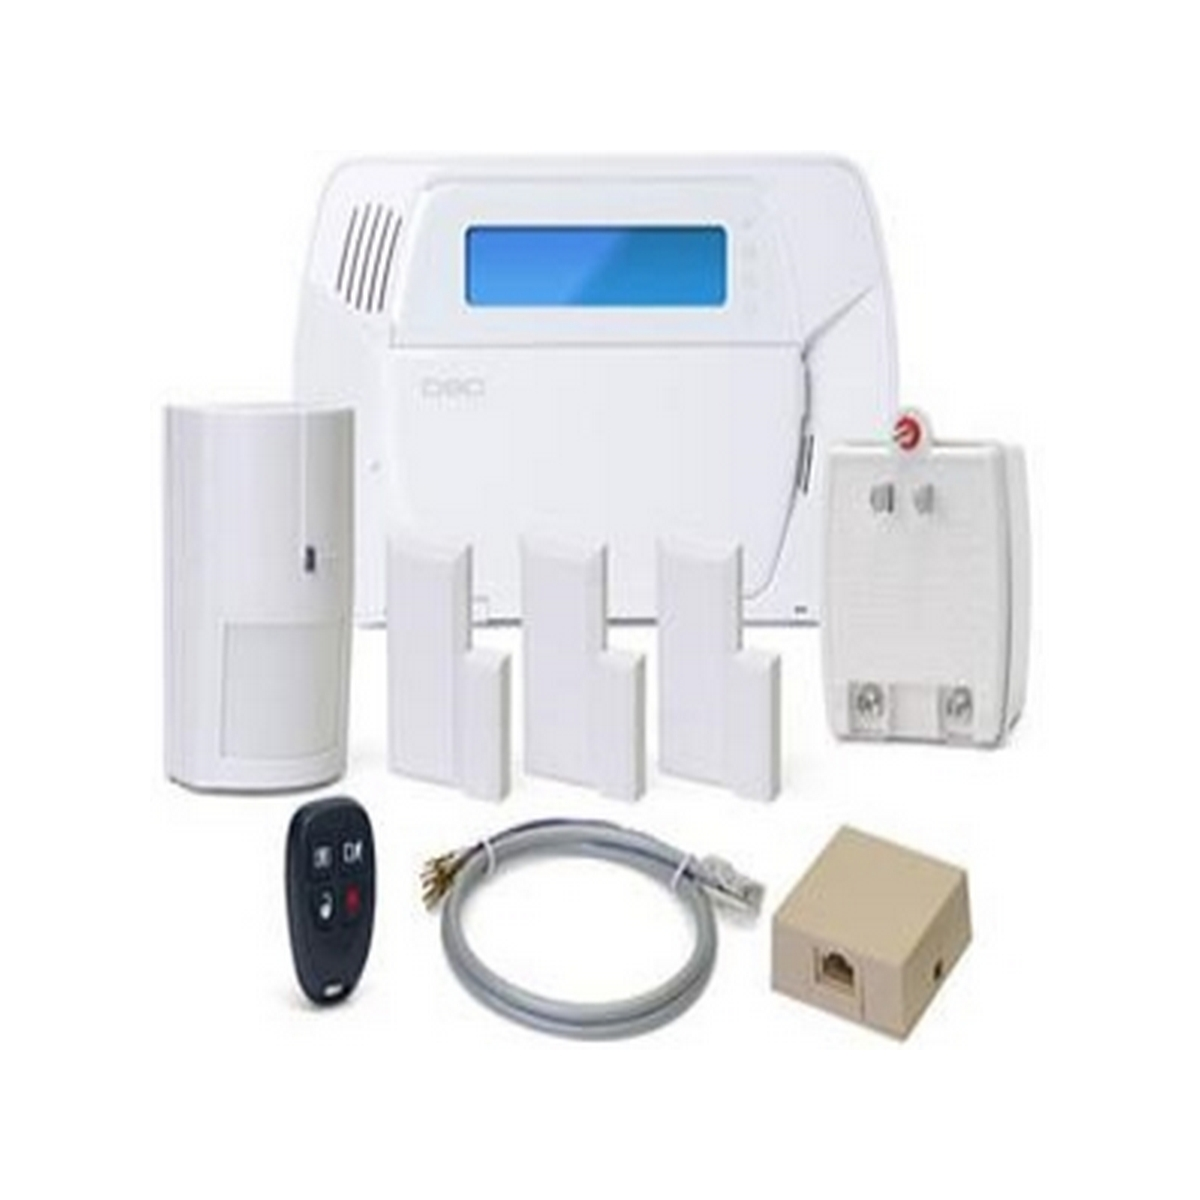 IMPASSA SELF-CONTAINED WIRELESS SECURITY SYSTEM WITH INTEGRATED HSPA (3G) CELLULAR COMMUNICATOR 1 x WS4904P WLS PET-IMMUNE DETECTOR 1 x WS4939 FOUR-BUTTON WIRELESS KEY 3 x EV-DW4975 WLS VANISHING DOOR/WINDOW CONTACTS TRANSFORMER TELEPHONE JACK AND CORD